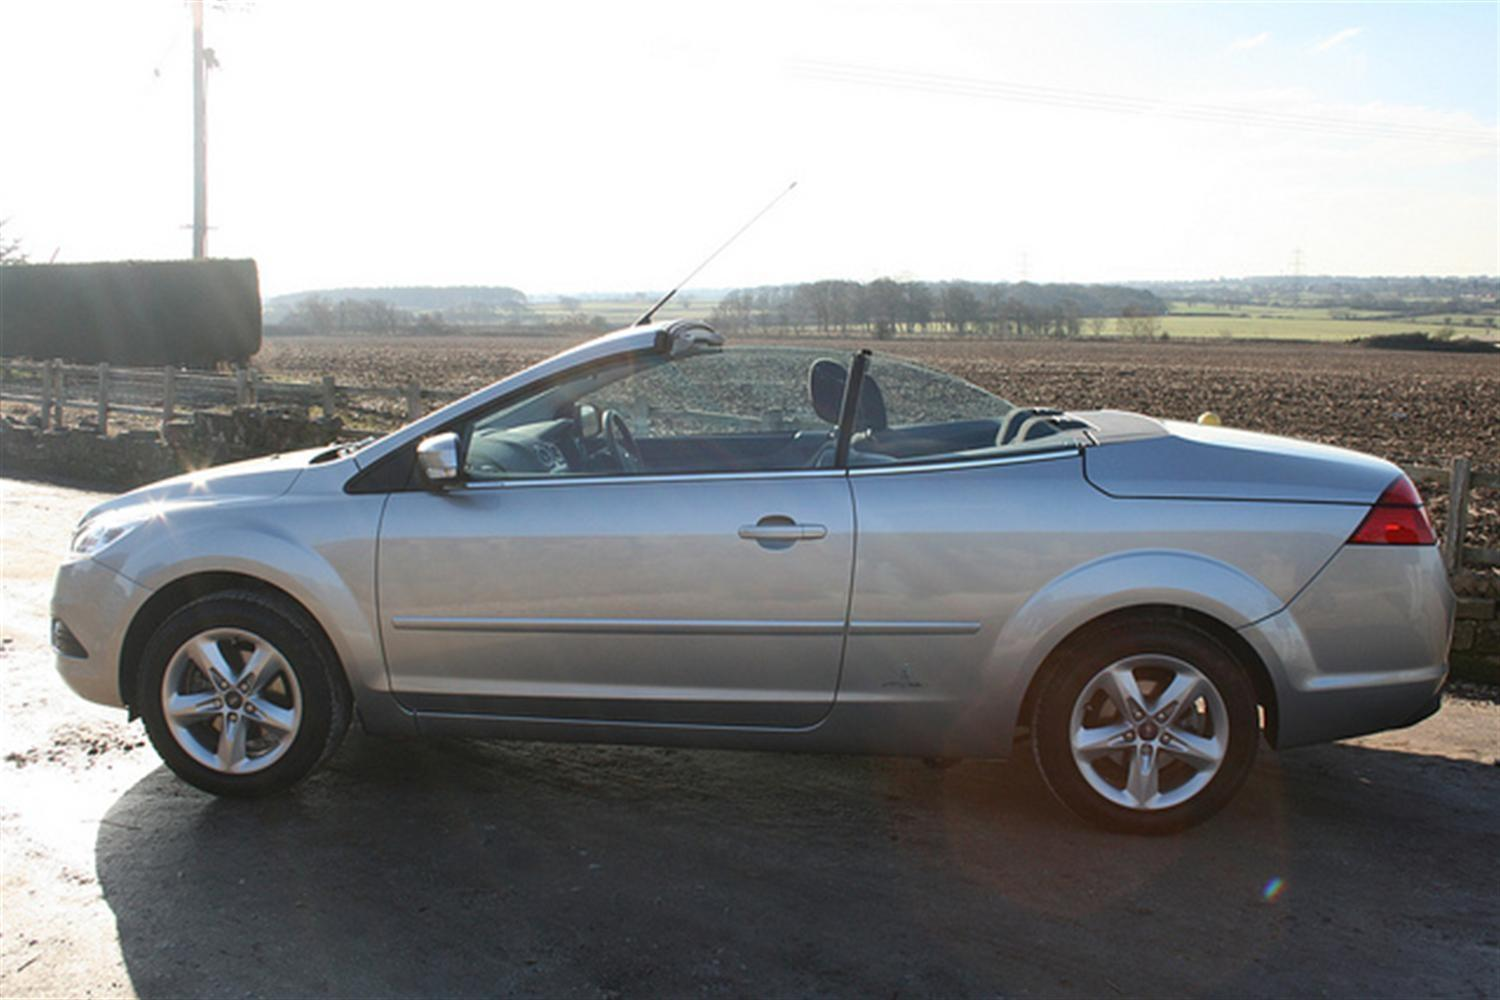 Which convertible is best for me?